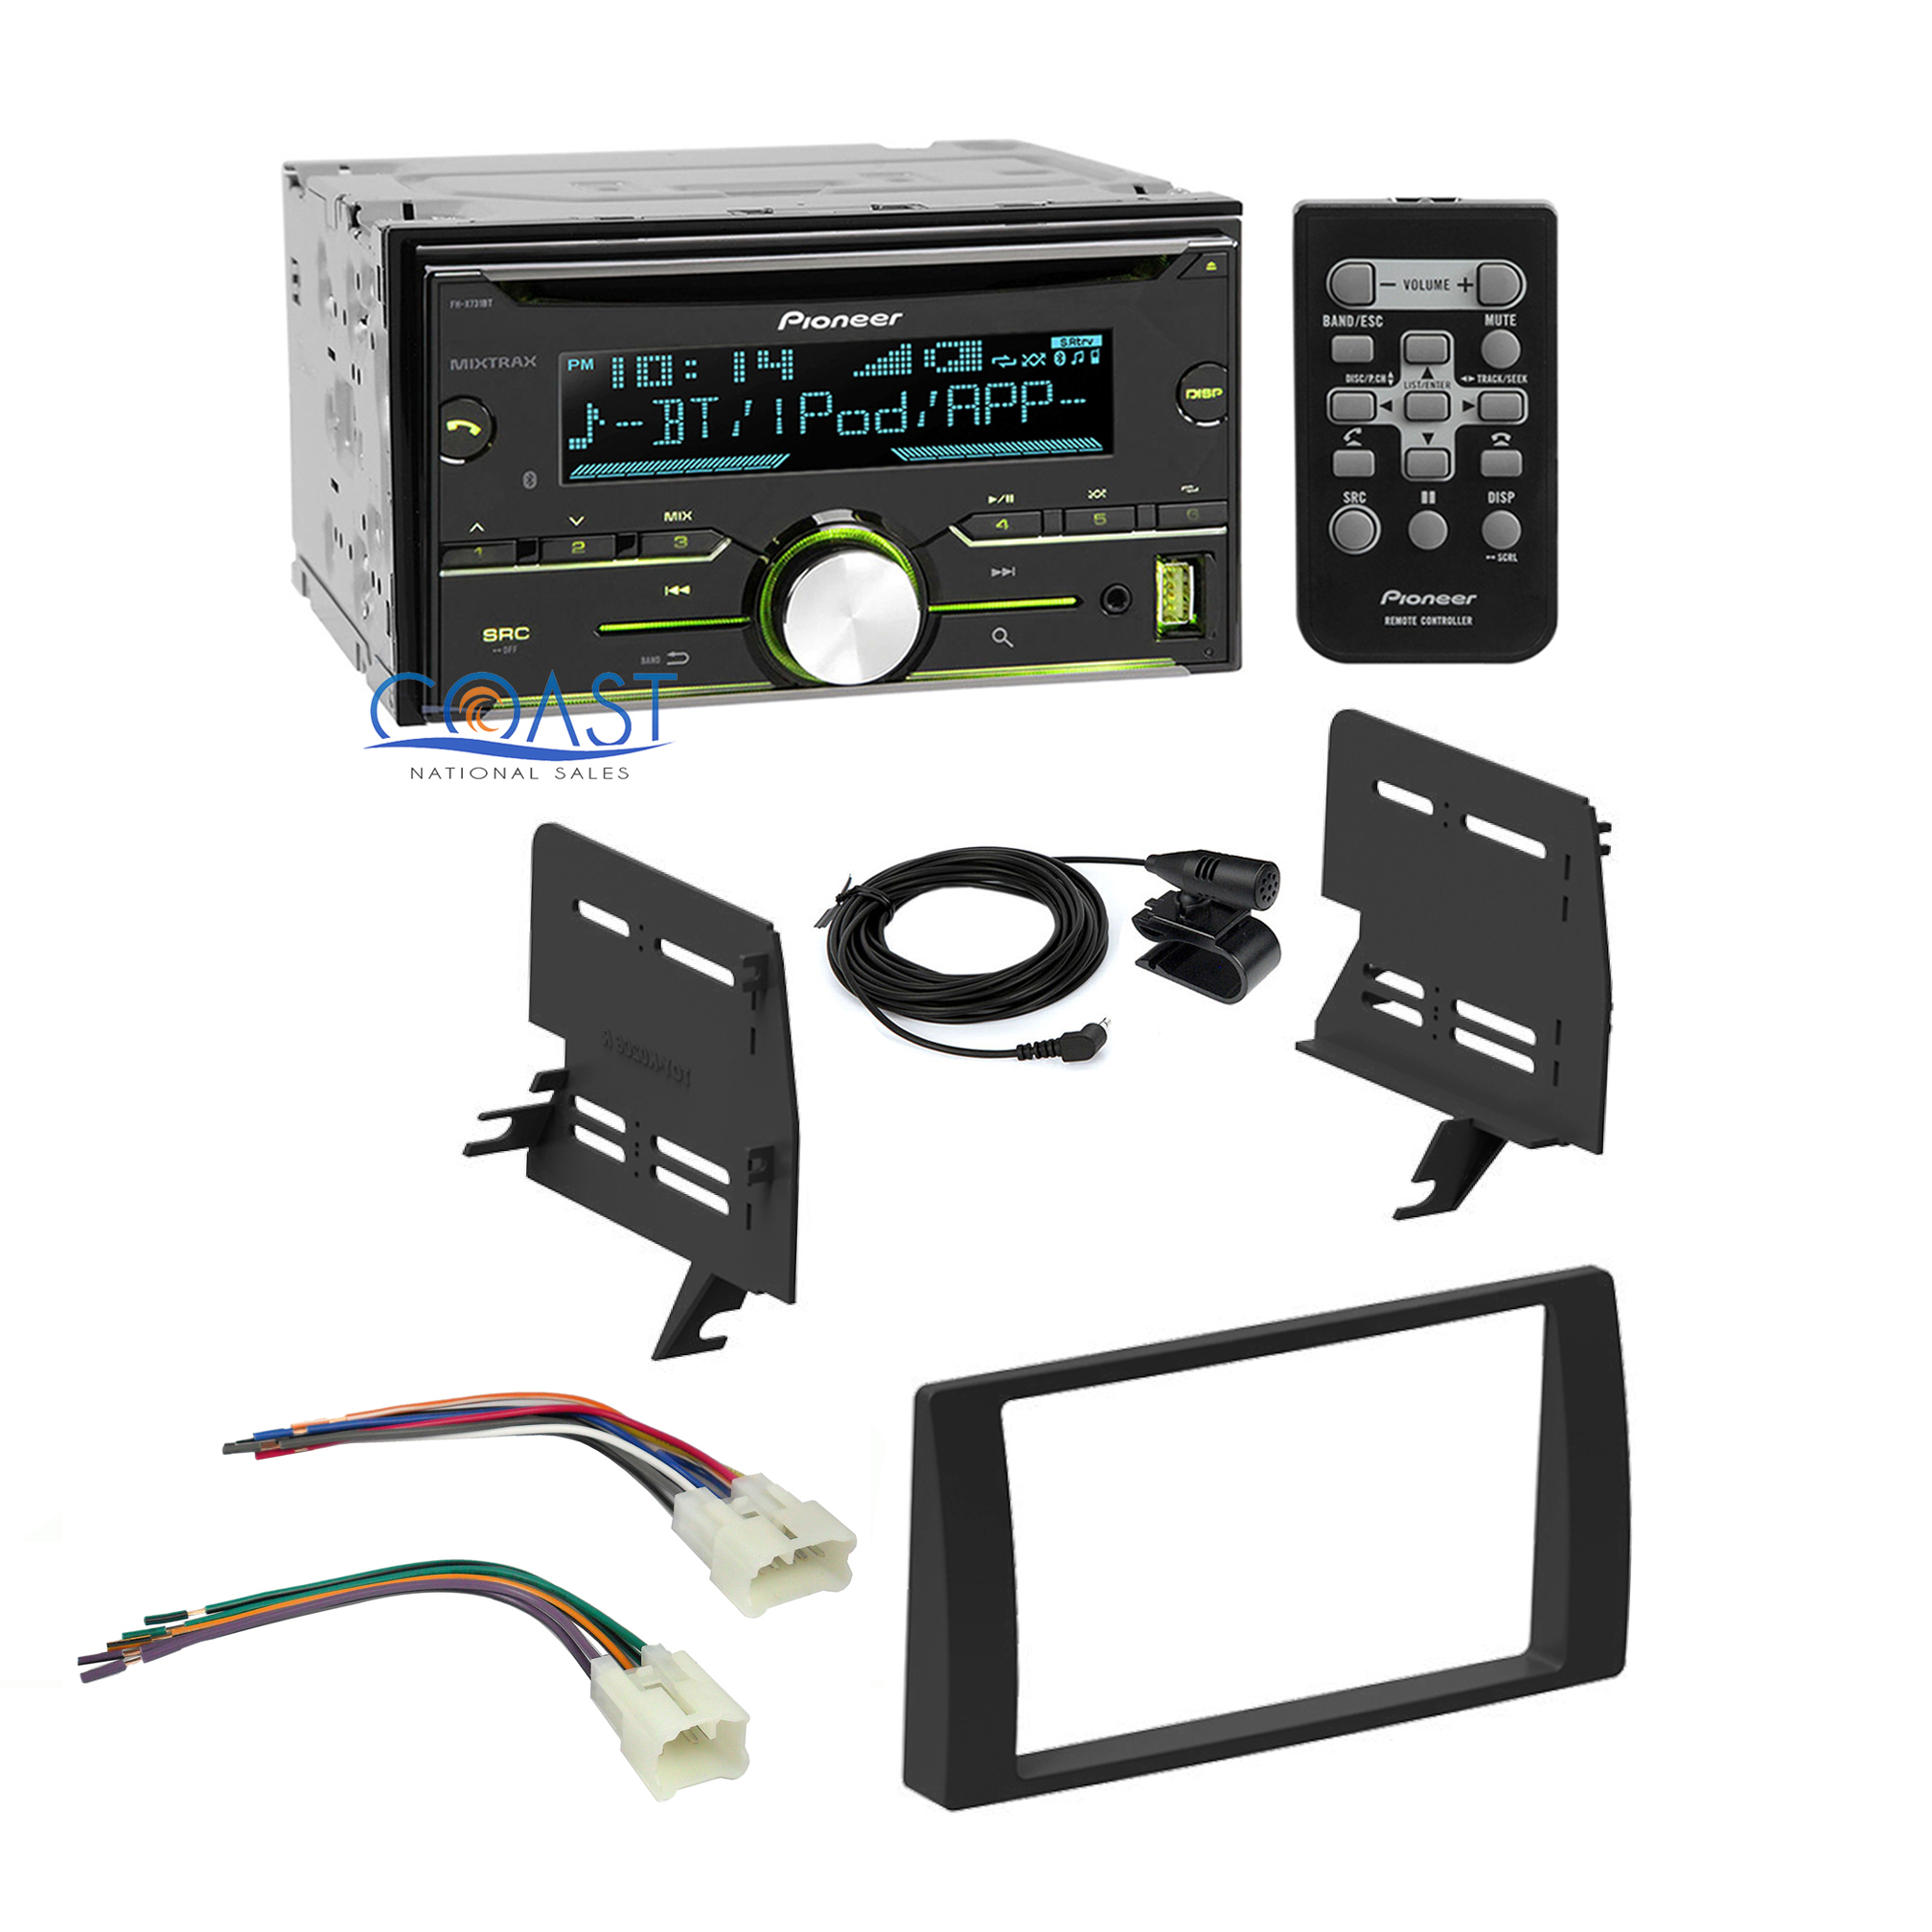 pioneer car radio stereo double din dash kit harness for 2002 2006 toyota cam. Black Bedroom Furniture Sets. Home Design Ideas